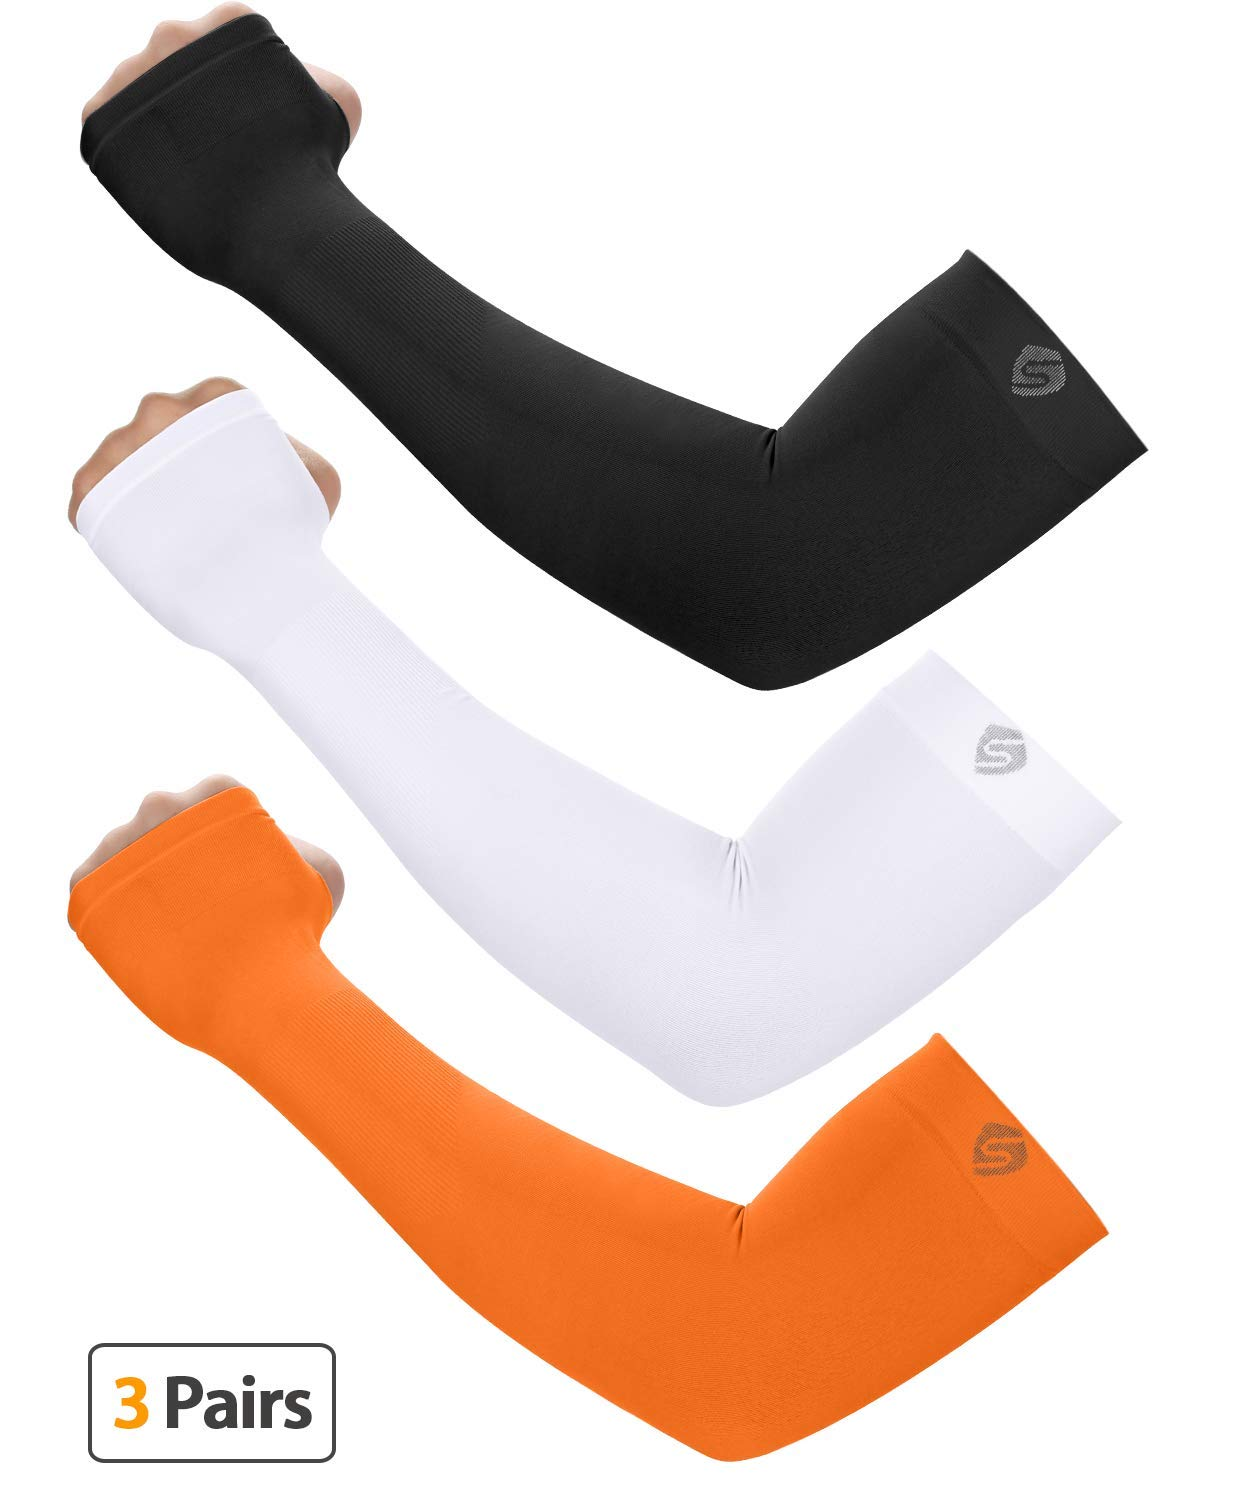 SHINYMOD UV Protection Cooling Arm Sleeves Men Women Sunblock Cooler Protective Sports Running Golf Cycling Basketball Driving Fishing Long Arm Cover Sleeves